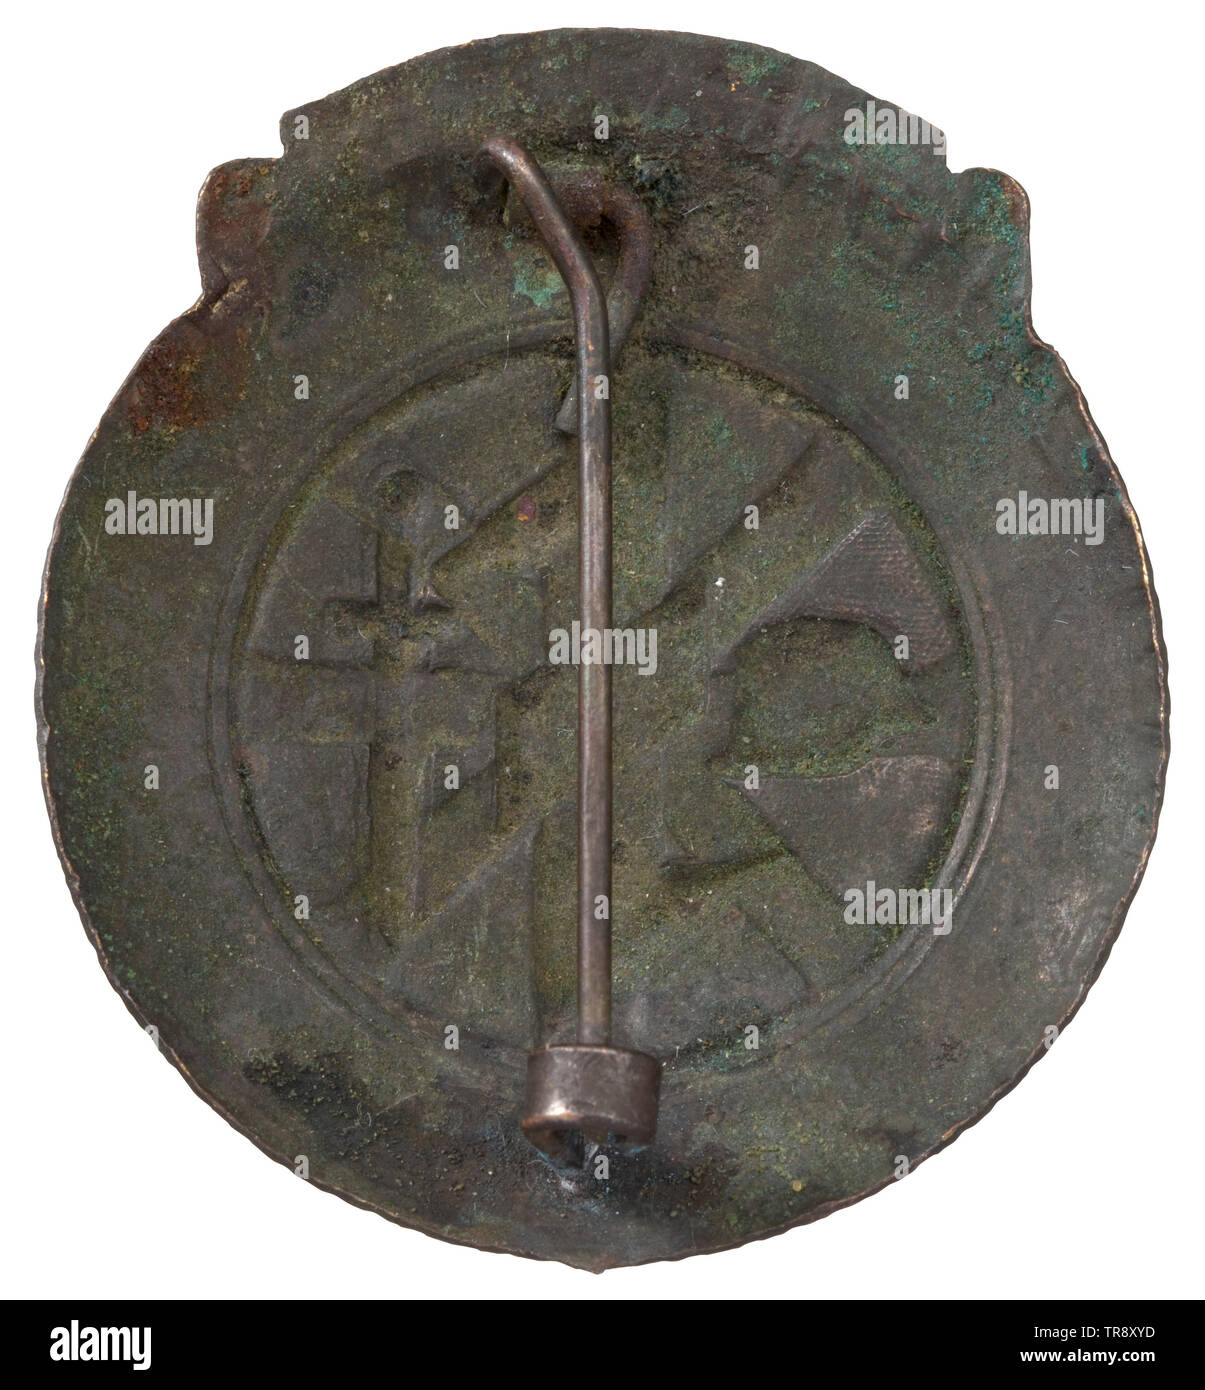 A fidelity badge for the Netherlands volunteers of the NSKK Hollow-stamped non-ferrous metal badge awarded to Dutch members of the NSKK for deployment on the Eastern front. Very rare. historic, historical, organisation, organization, organizations, organisations, 20th century, Additional-Rights-Clearance-Info-Not-Available - Stock Image